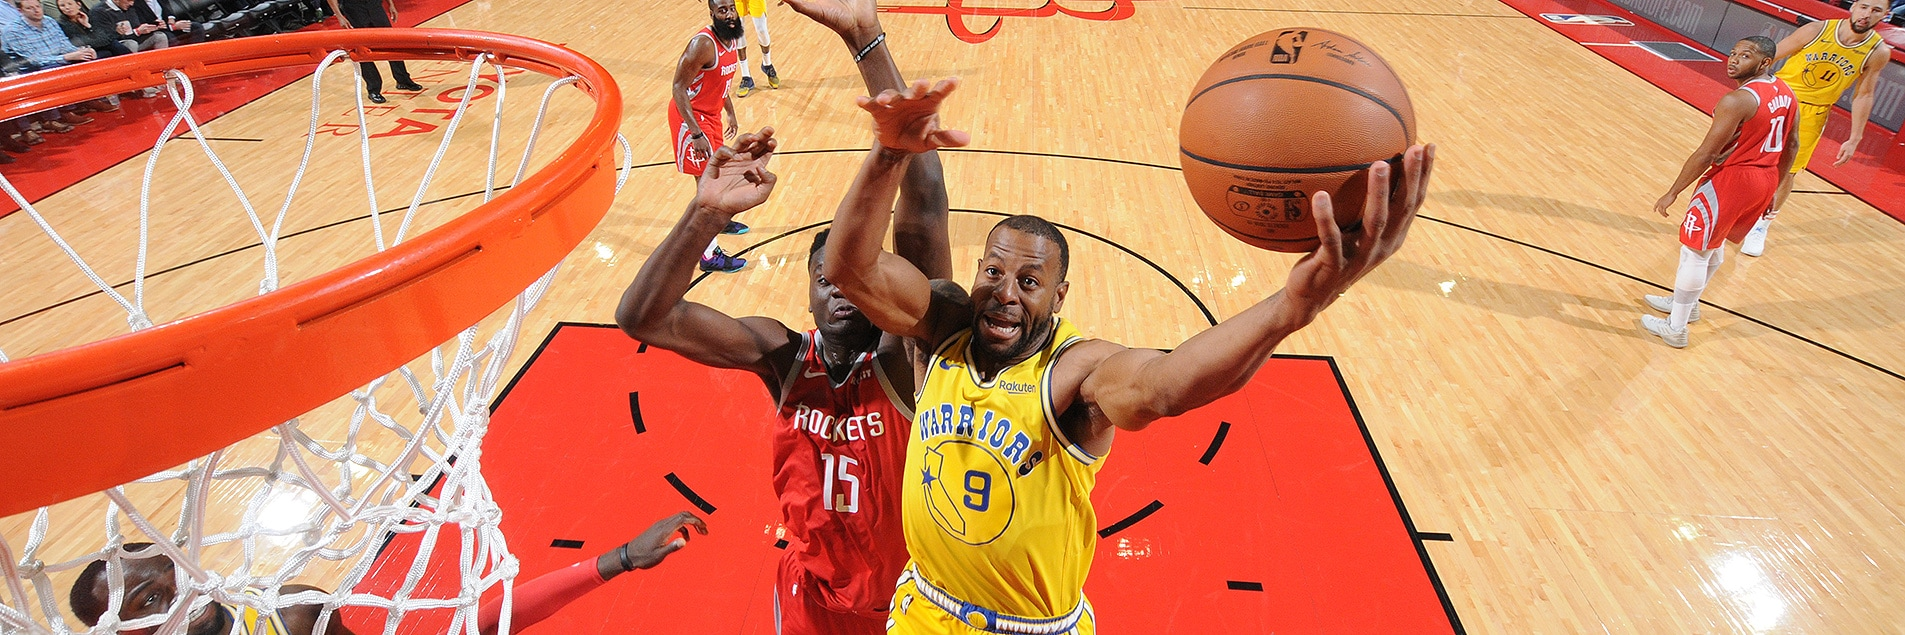 Dubs Struggle to Find Offense in Loss to Rockets